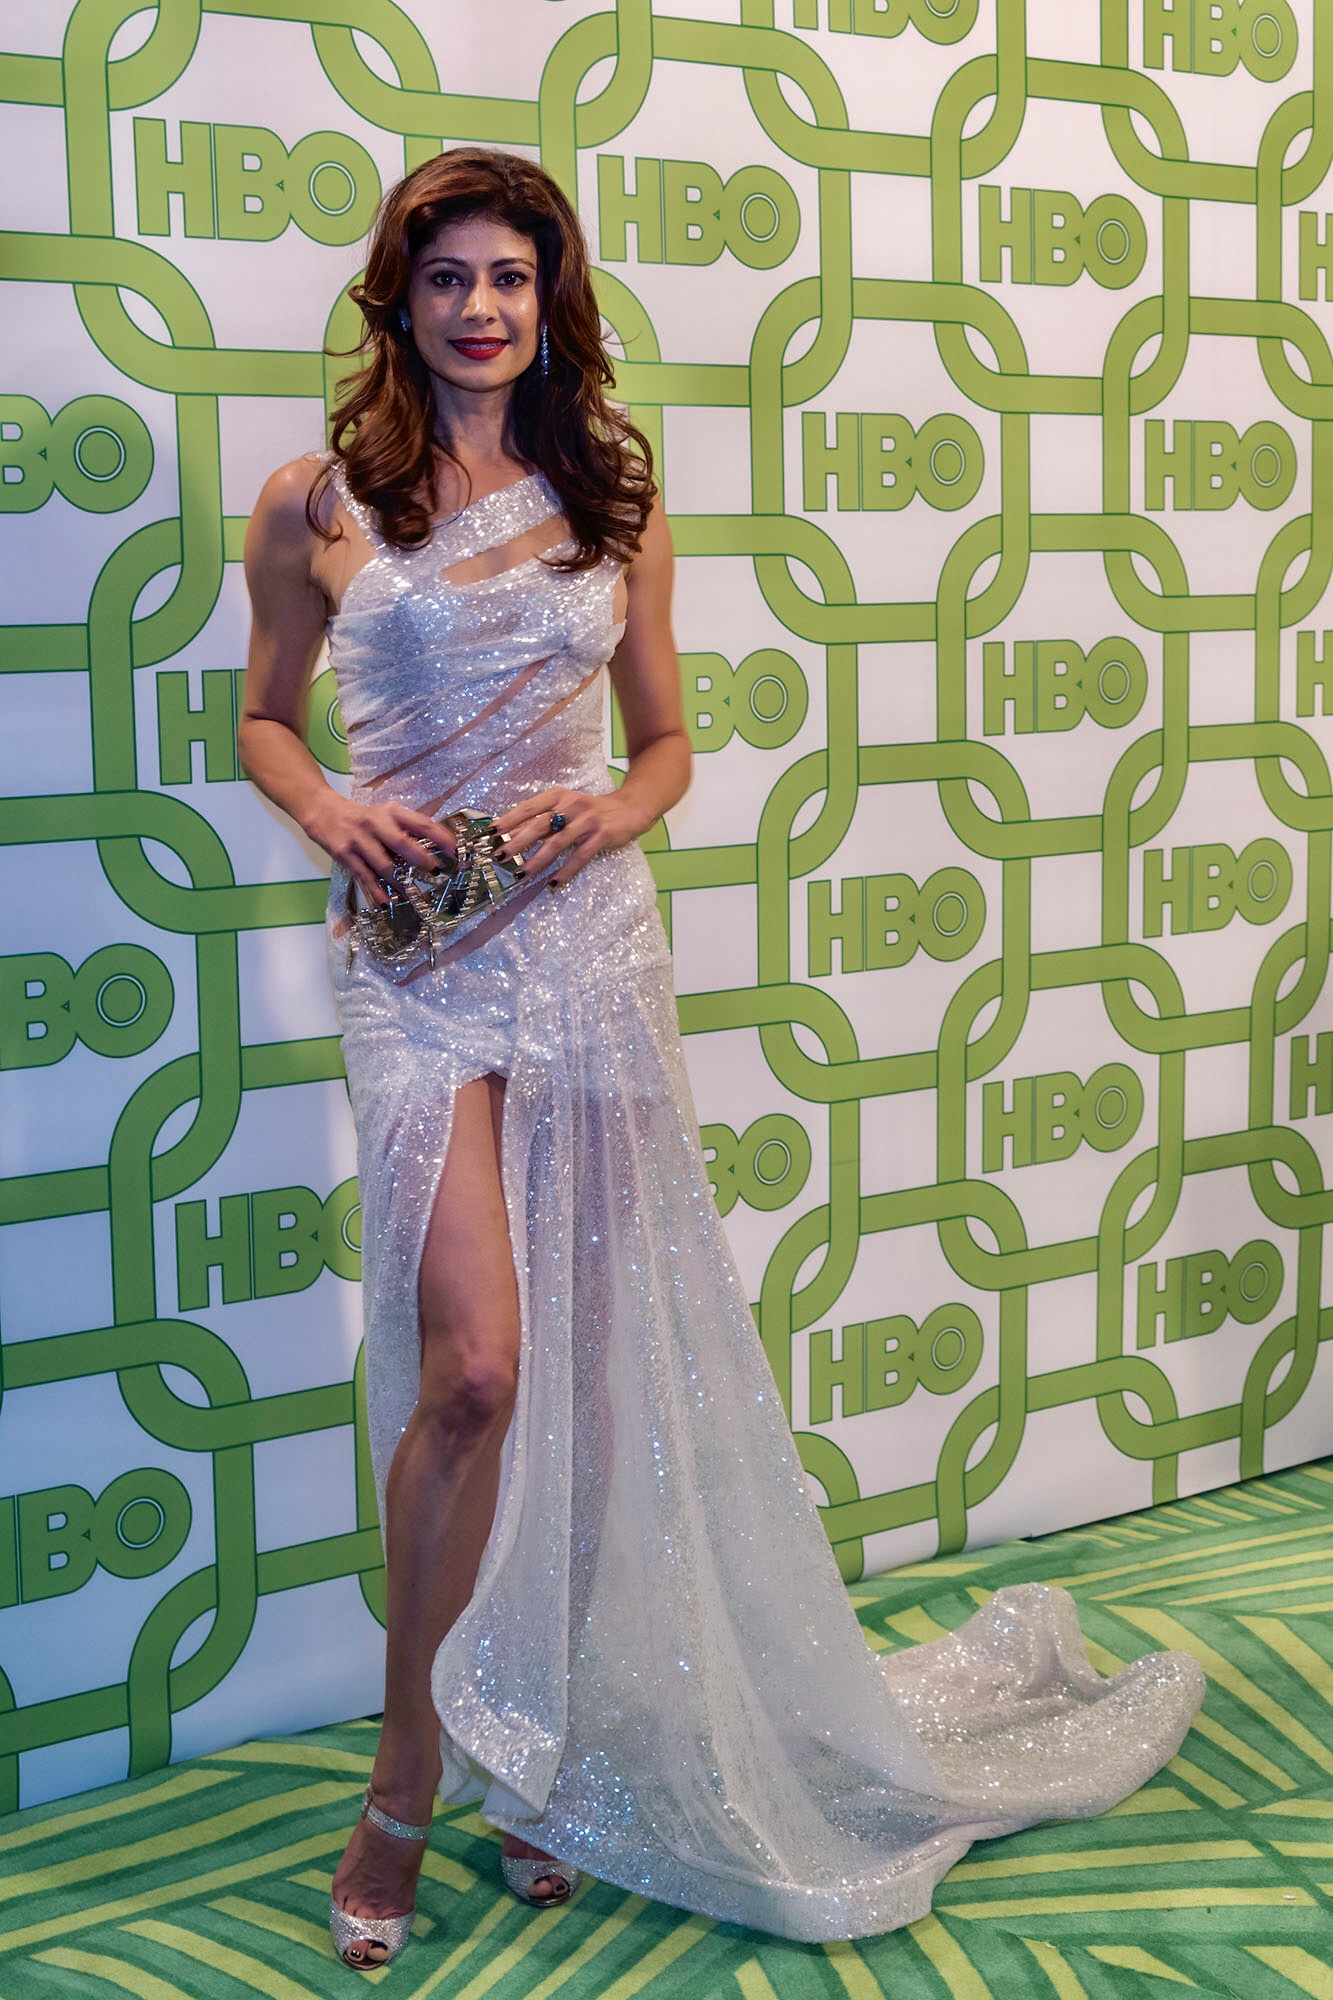 The gorgeous international sensation Miss India  @poojabatra  looking flawless at the  @goldenglobes  2019  @hbo  after party in a dress by our French designer  @hayariparis and a clutch by our designer  @laureldewitt Styled and fashion provided by  #ivanbittonstylehouse